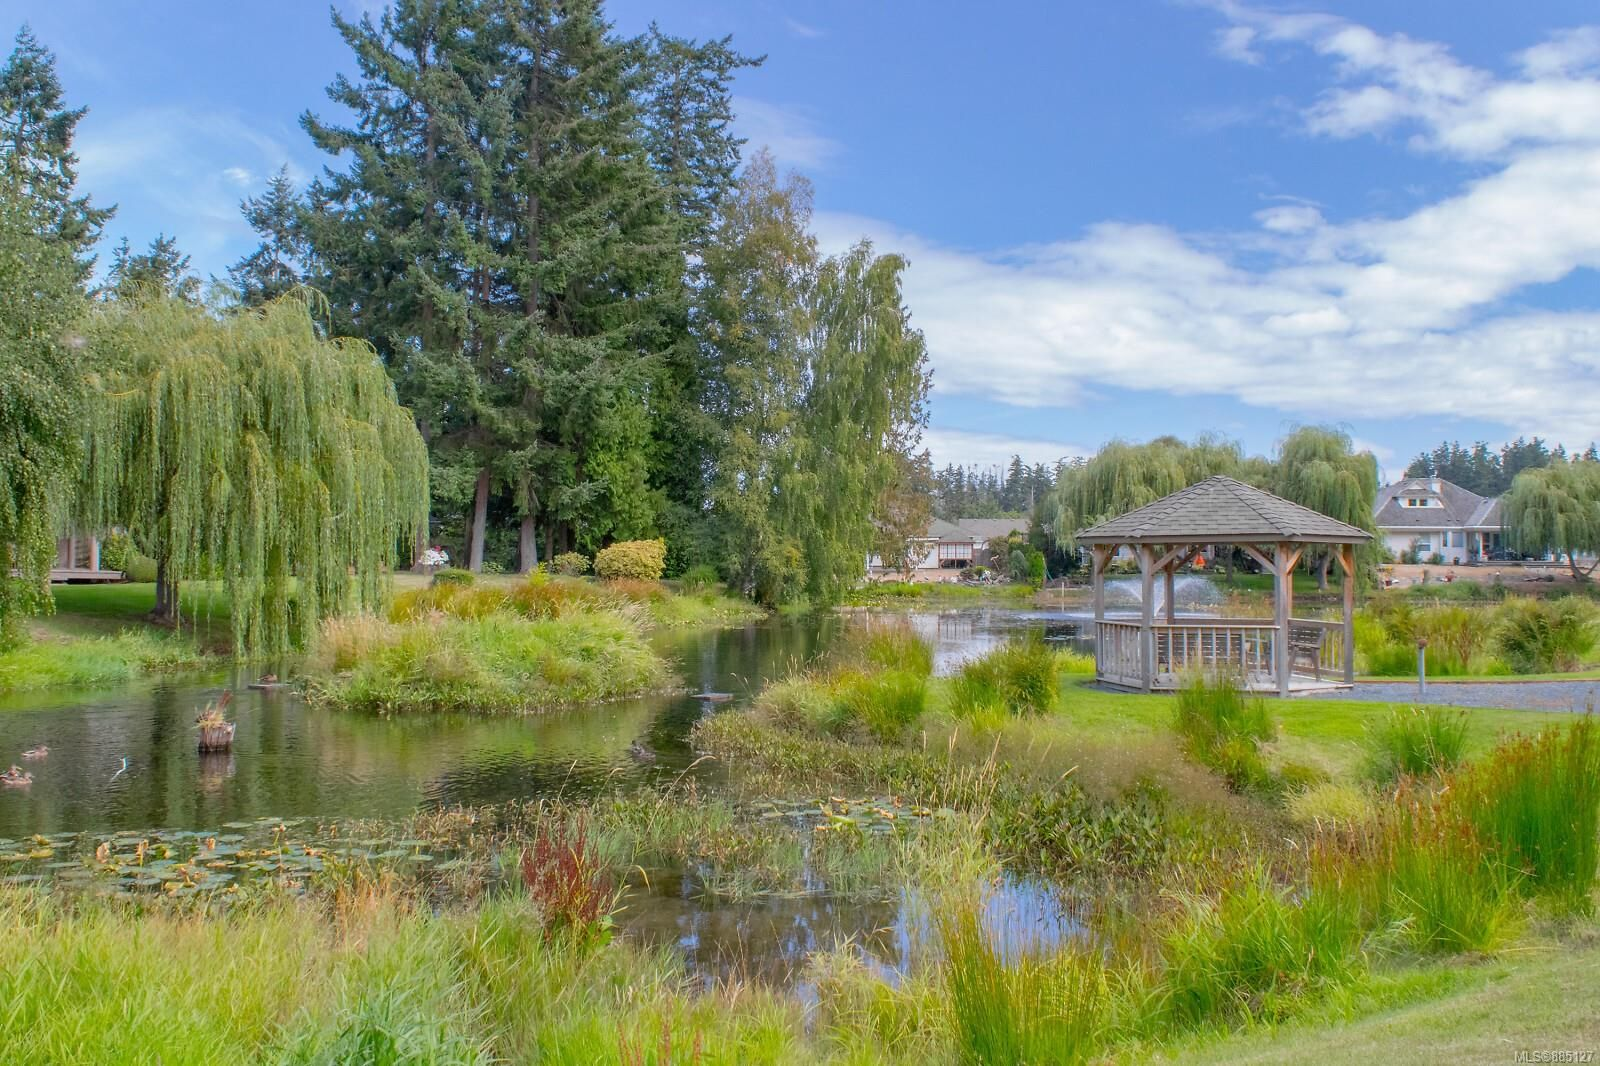 Photo 59: Photos: 26 529 Johnstone Rd in : PQ French Creek Row/Townhouse for sale (Parksville/Qualicum)  : MLS®# 885127